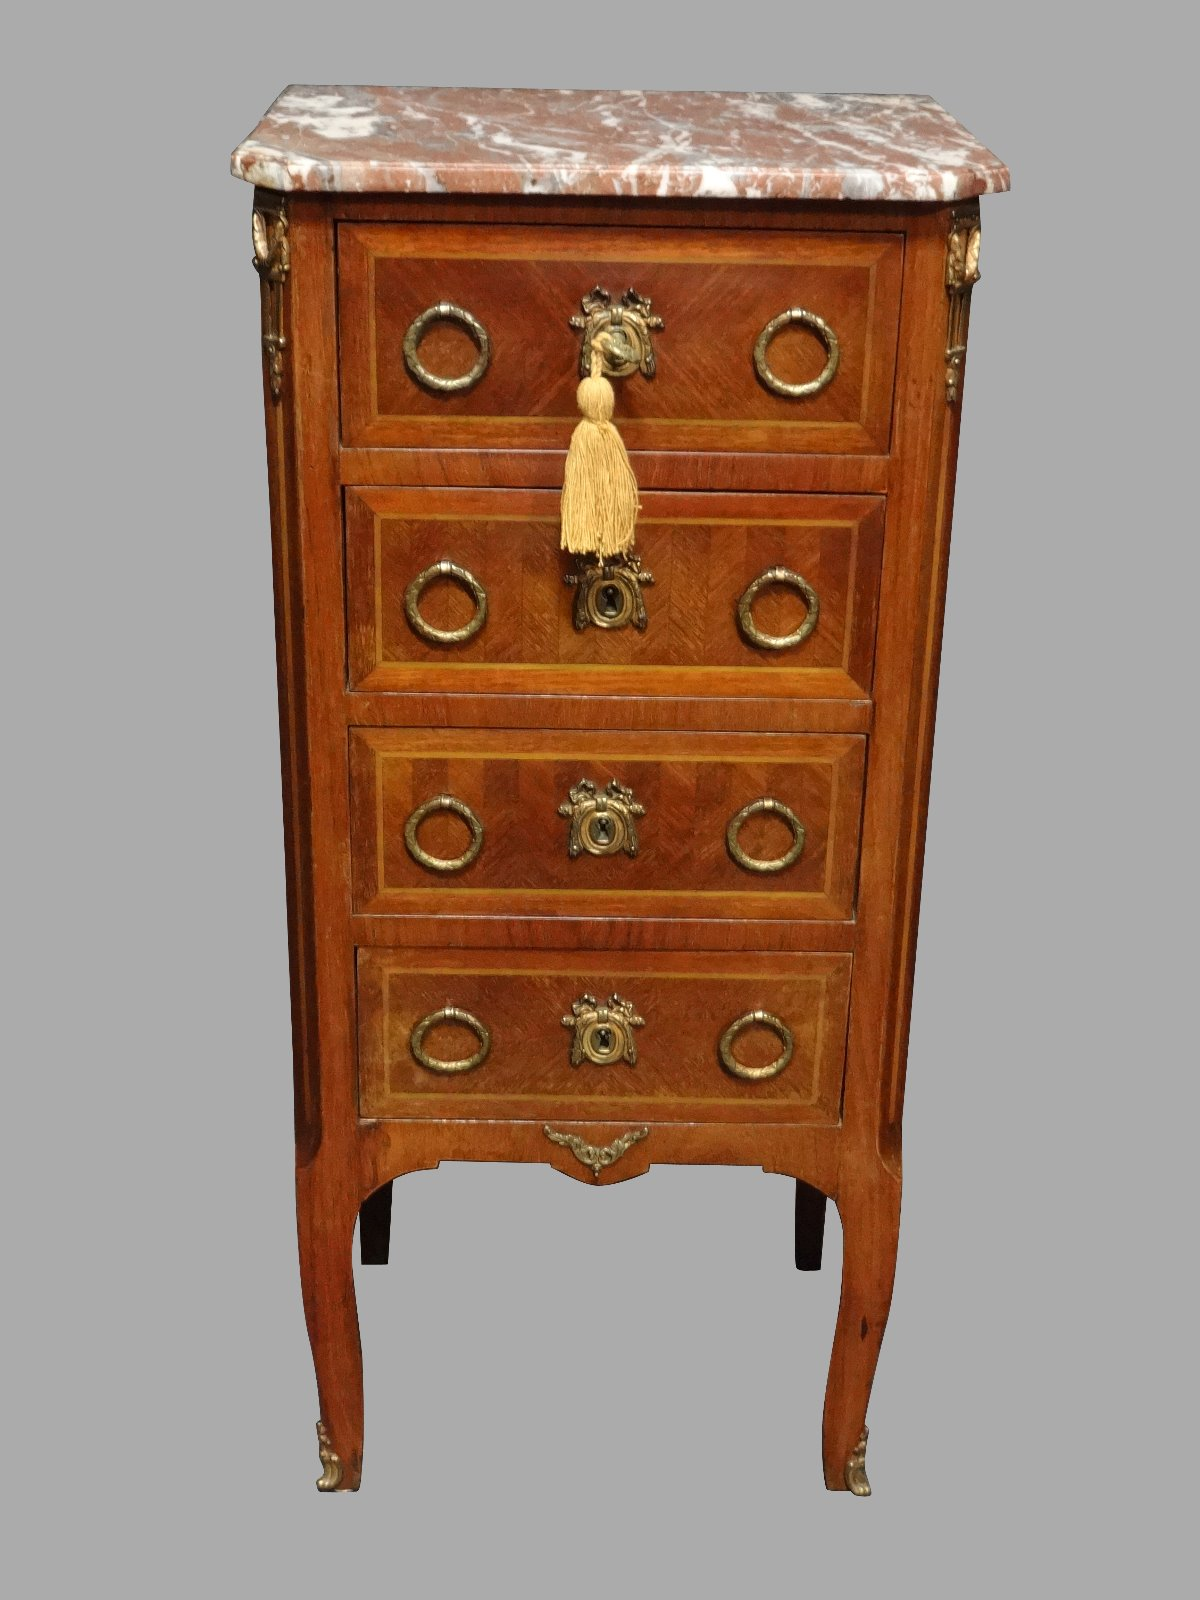 Very Good French Tulipwood Chest of Four Drawers c.1910 (1 of 1)